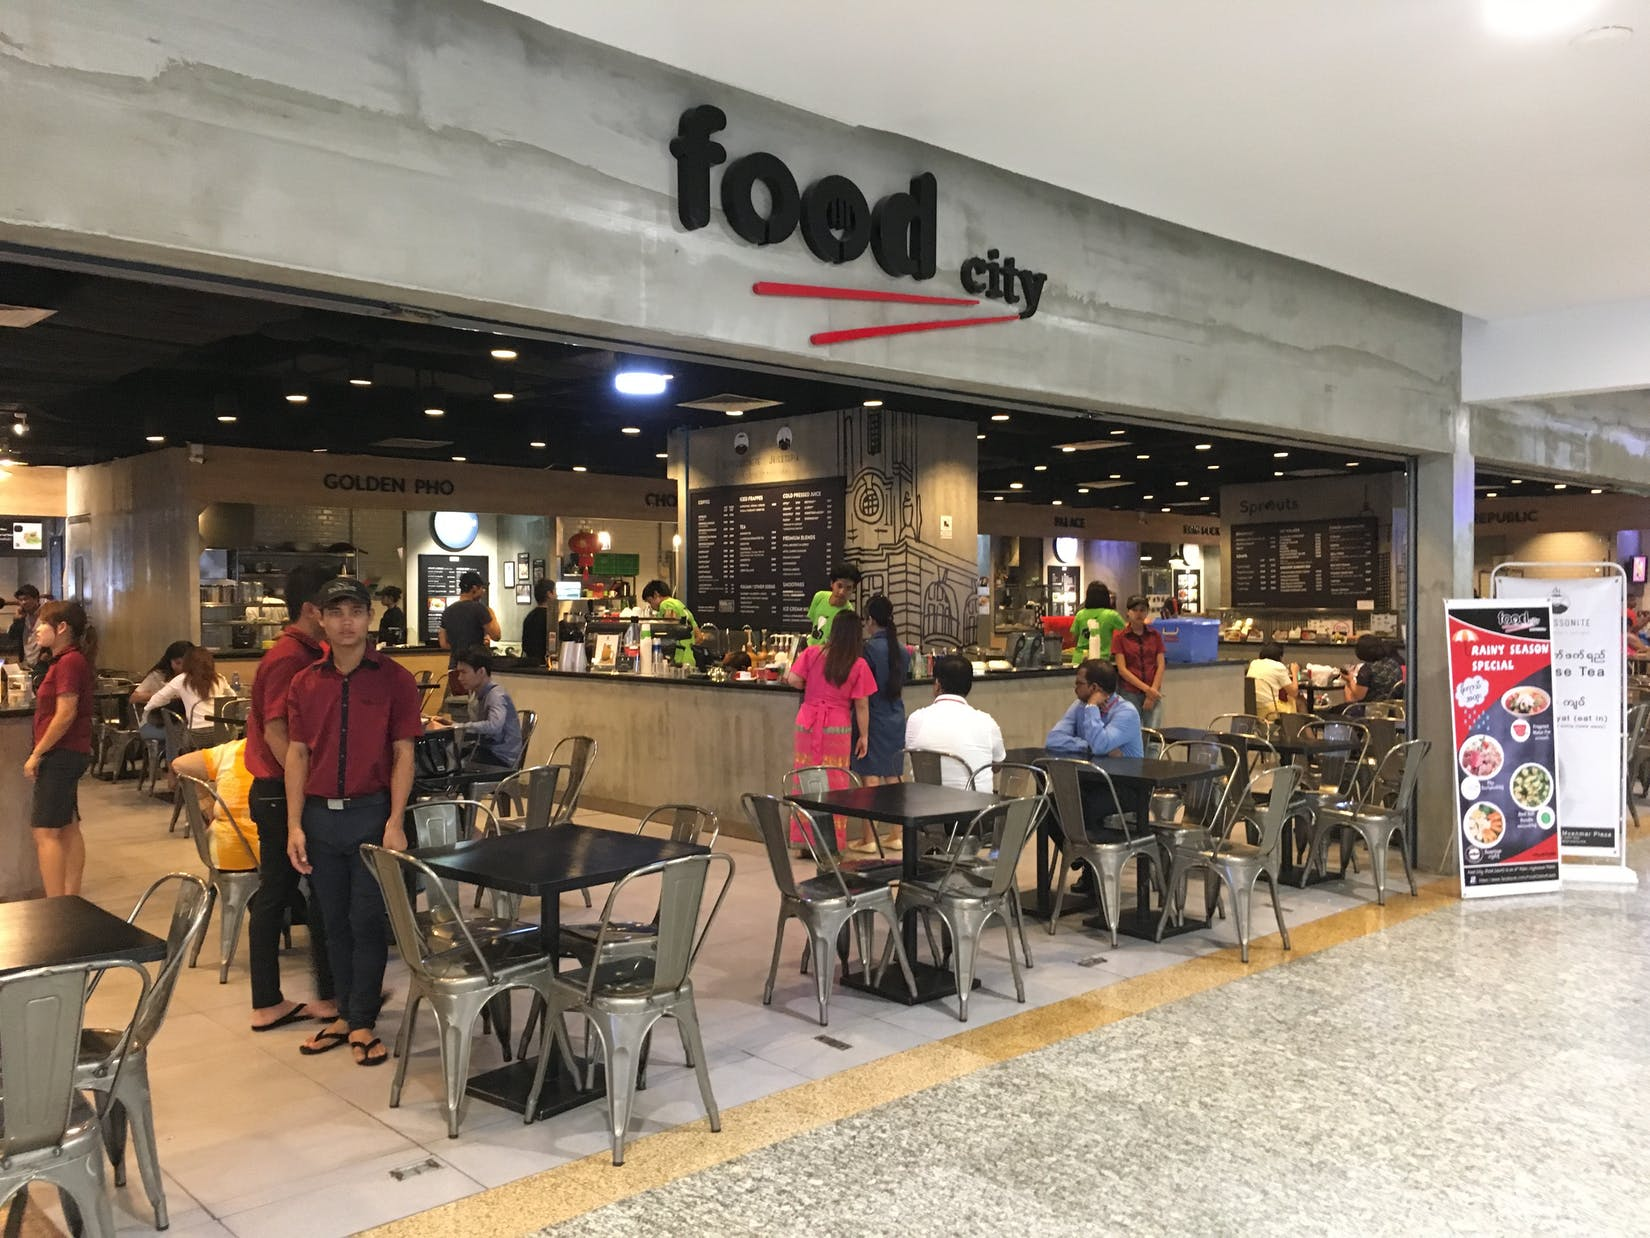 food city Myanmar Plaza | yathar